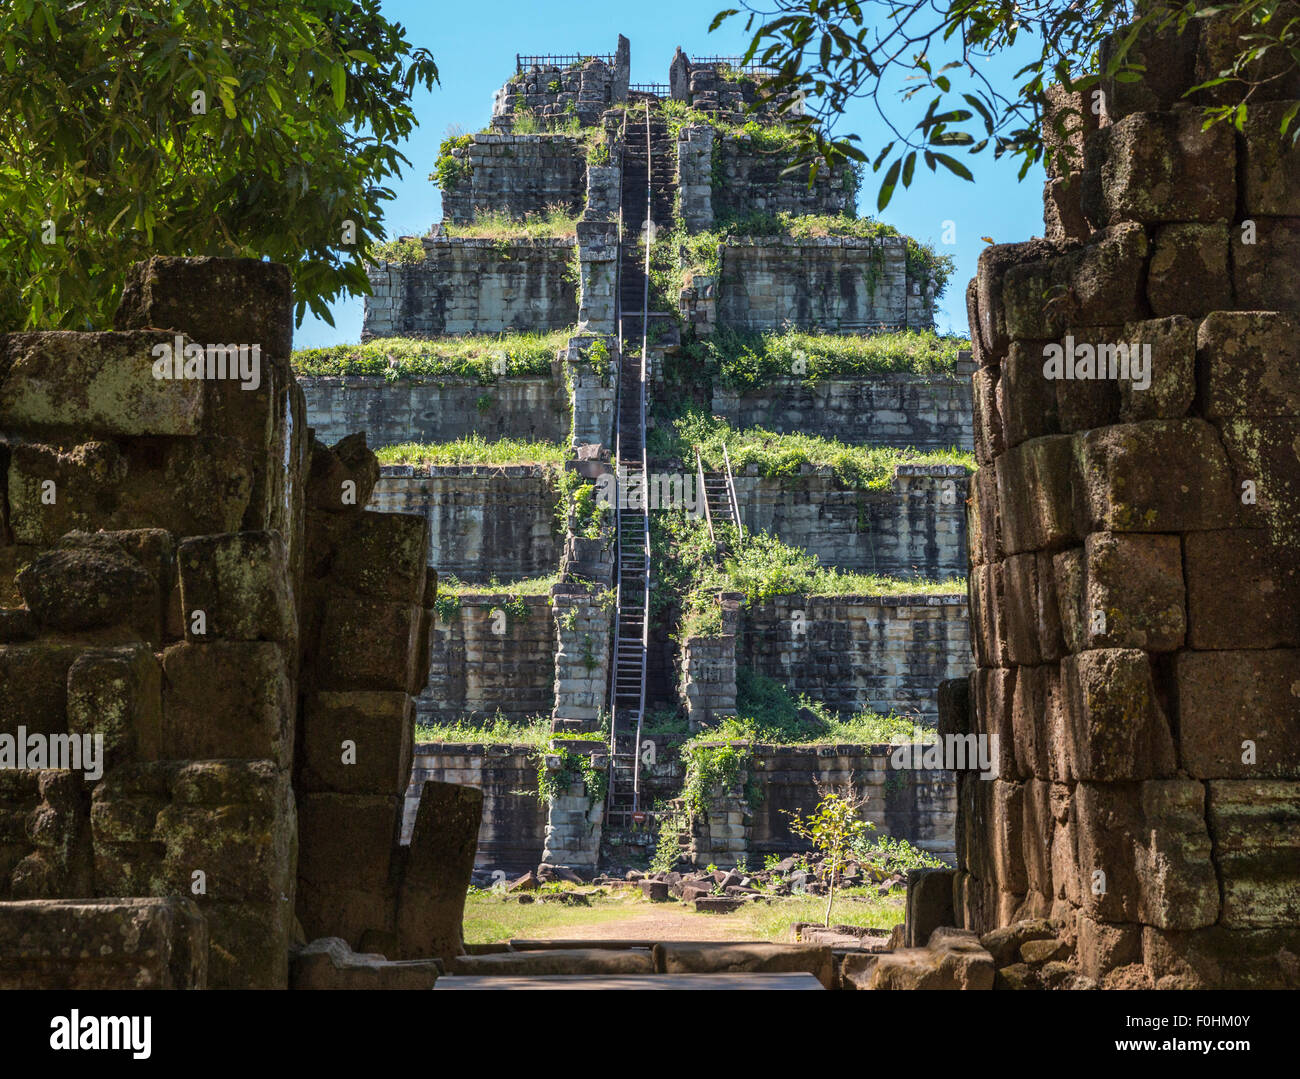 Seven-tiered ruin of the 10th century Khmer Prang pyramid in Koh Ker, Cambodia, which is 2.5 hours north of Siem - Stock Image